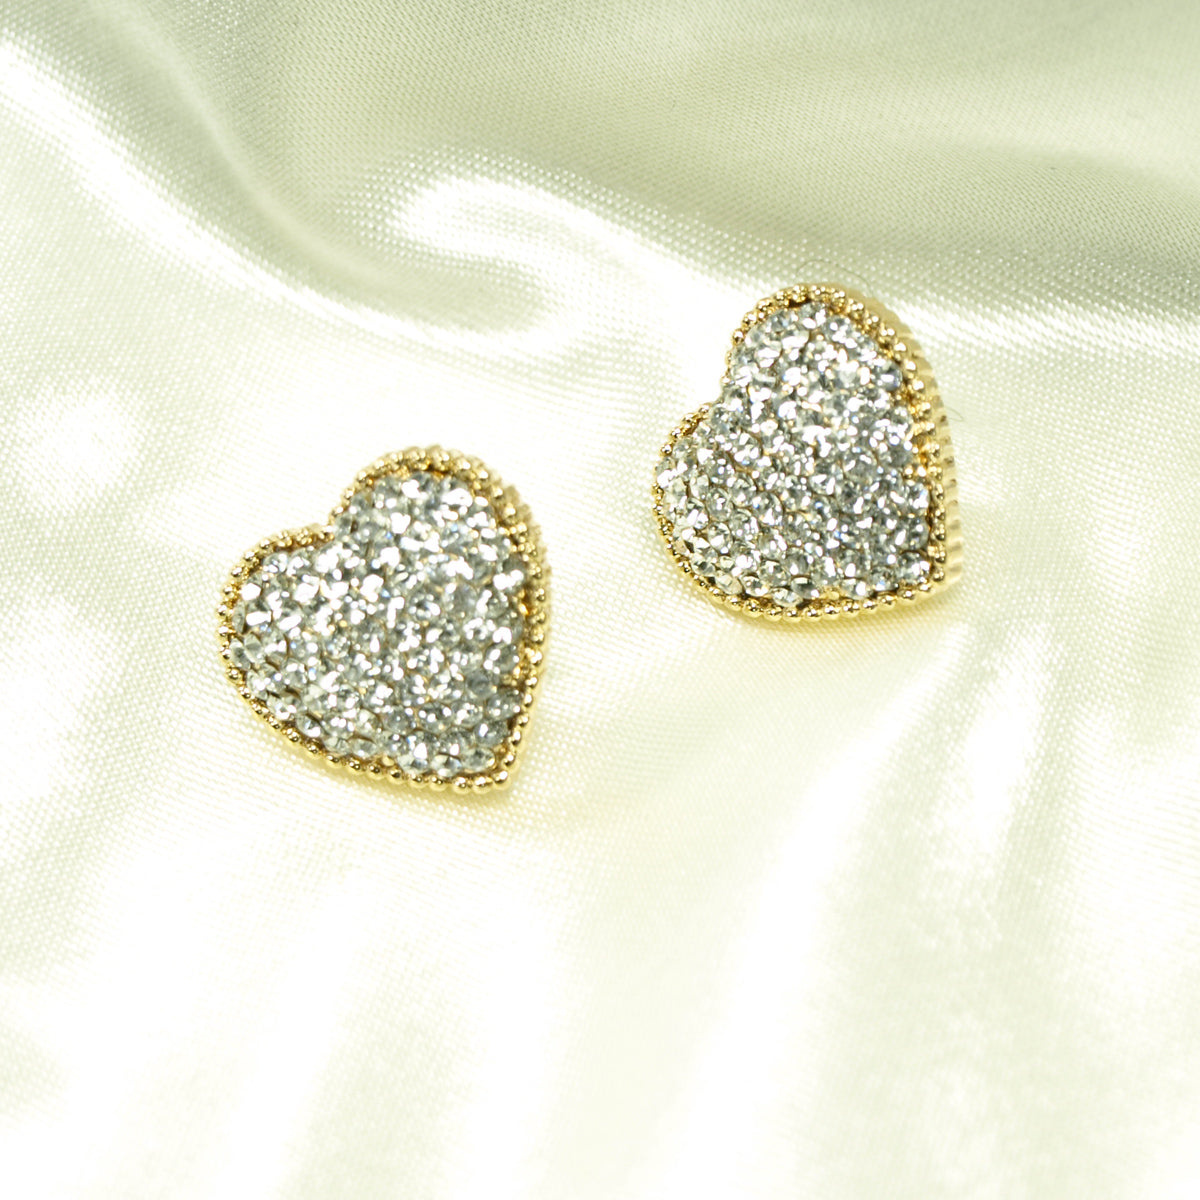 Gold Plated Rhinestone Heart Earrings